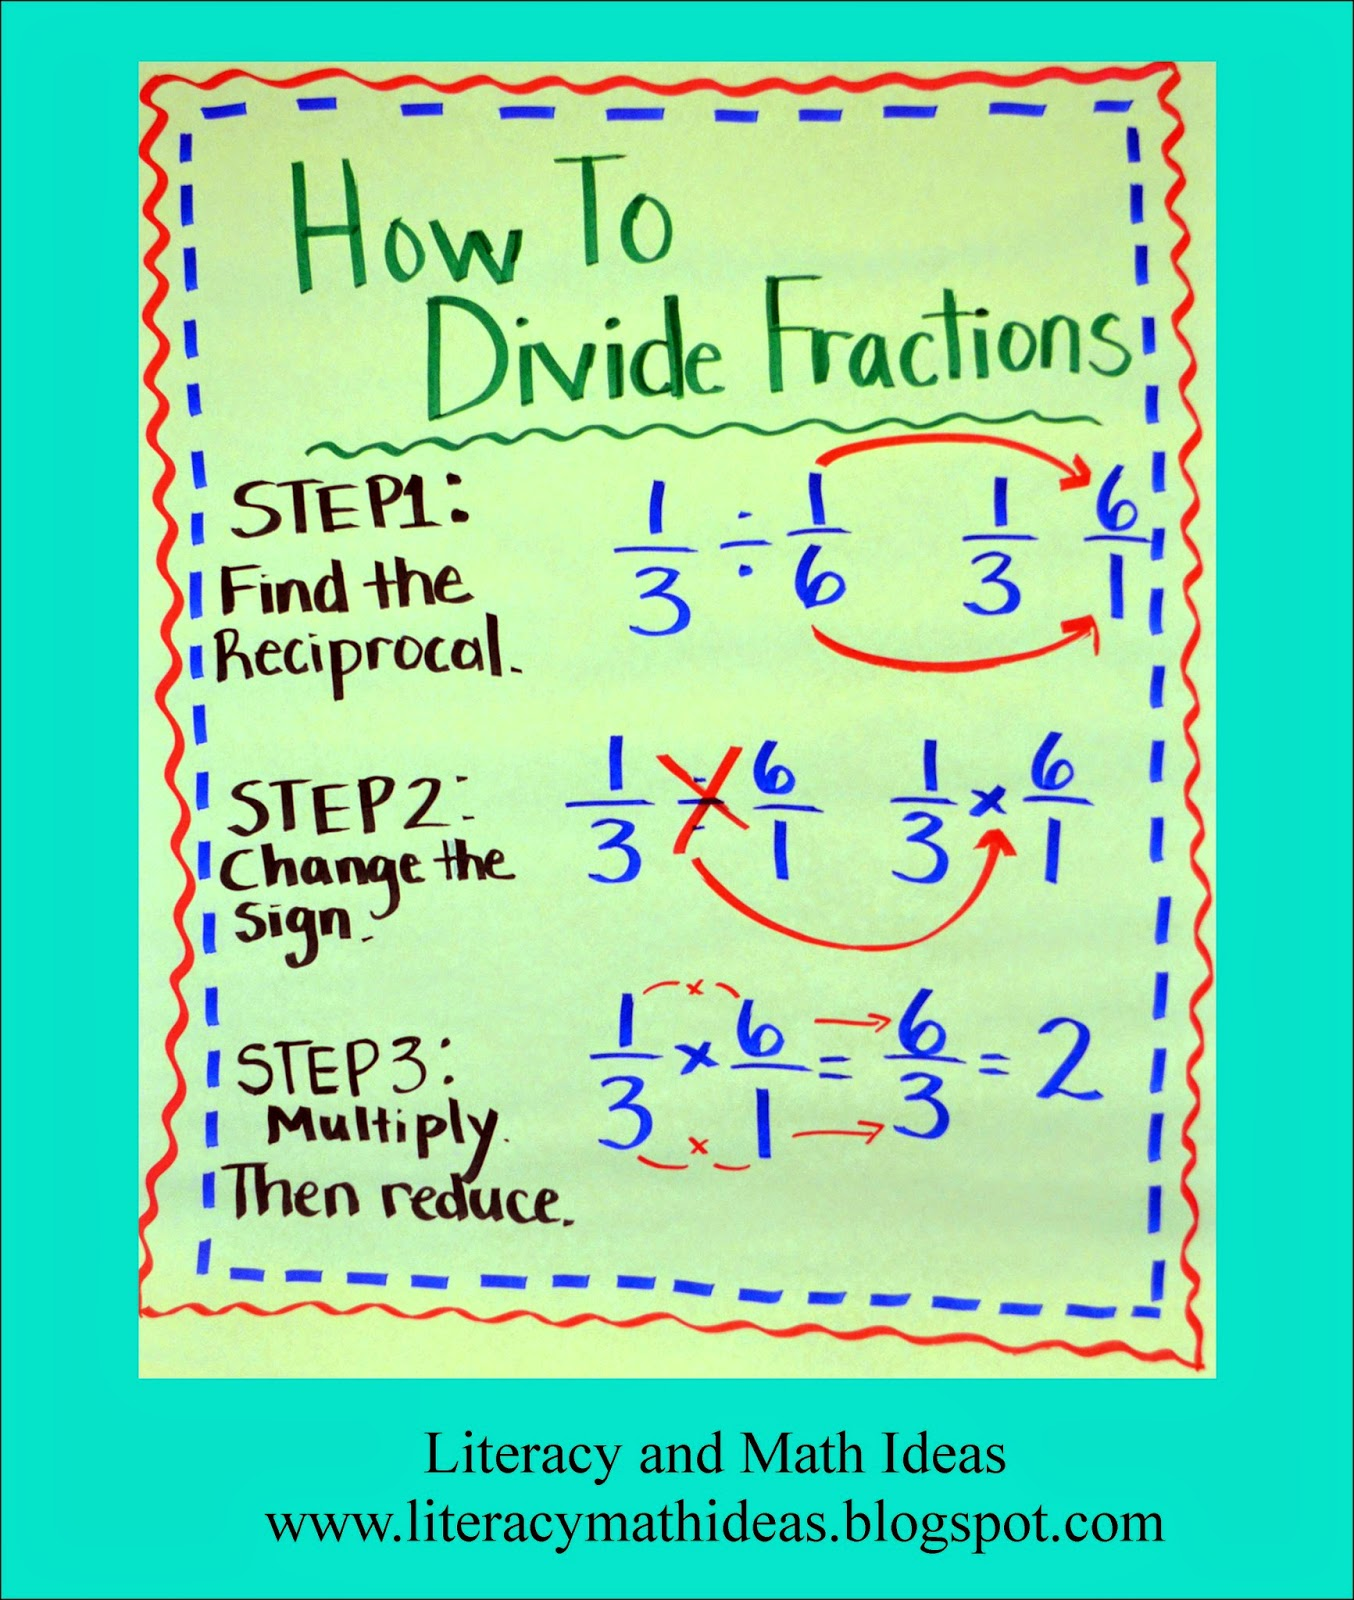 Literacy Amp Math Ideas What Does It Mean To Divide Fractions